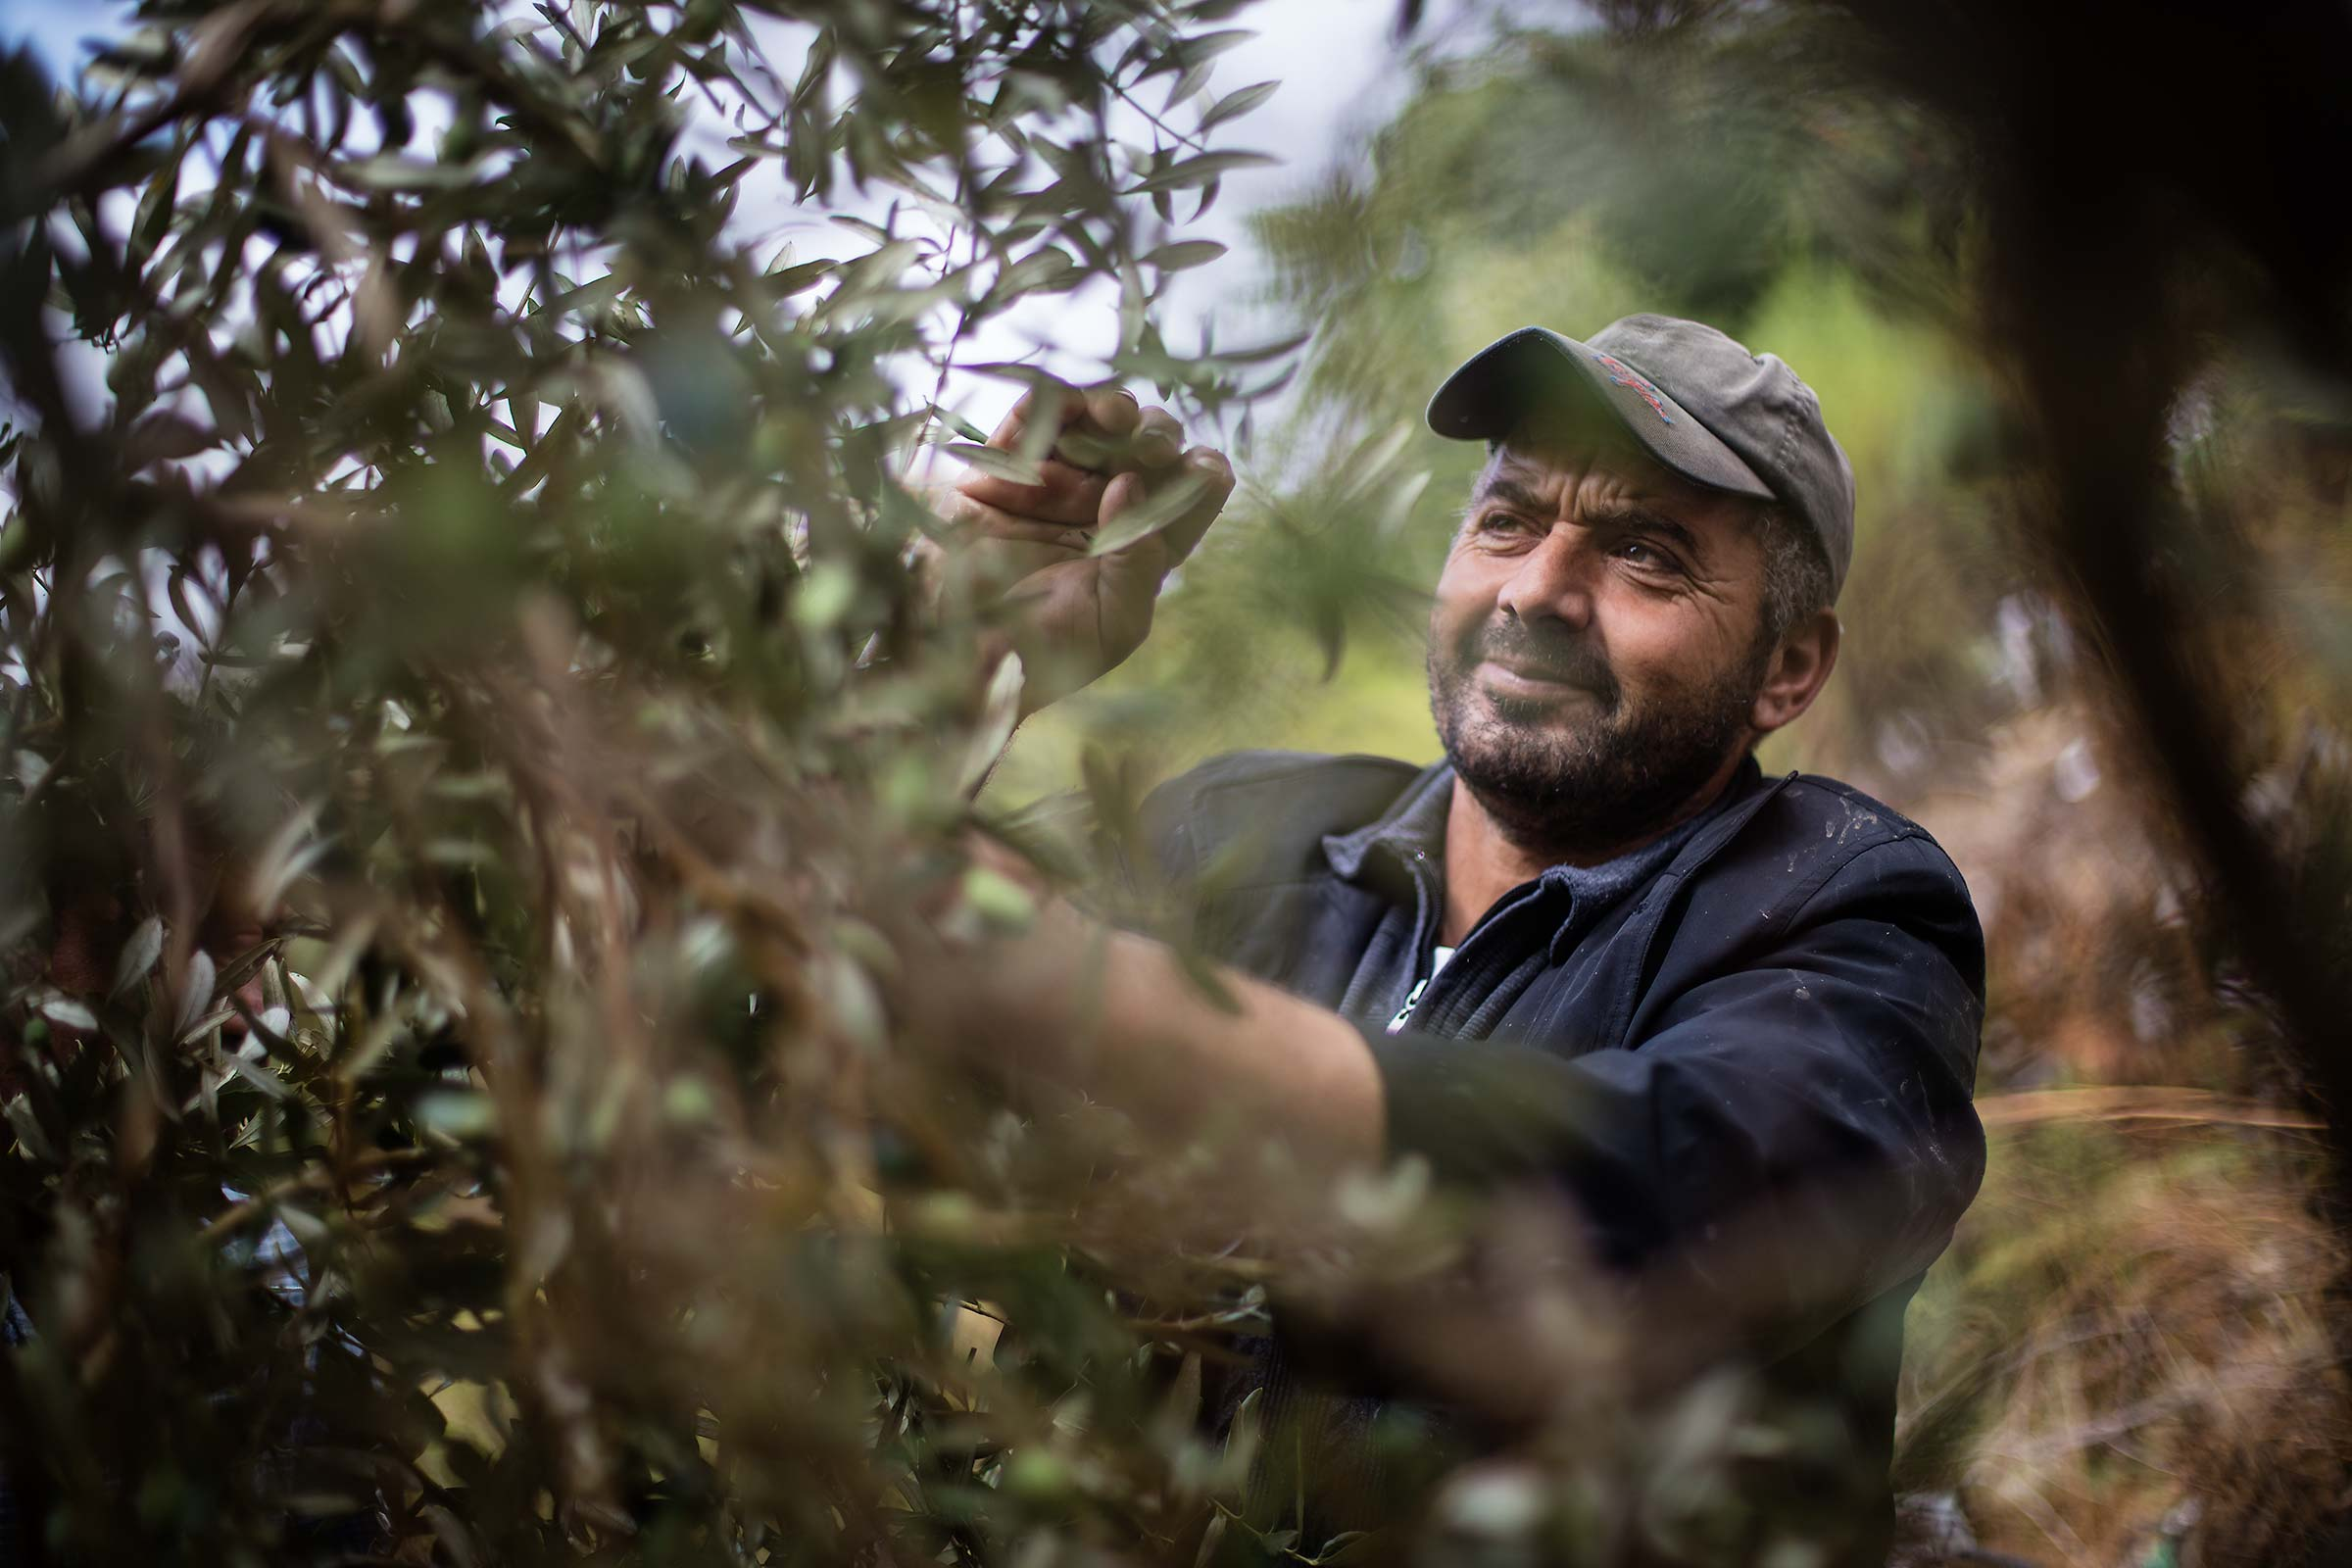 an agricultural worker picks olives off a tree in the West Bank